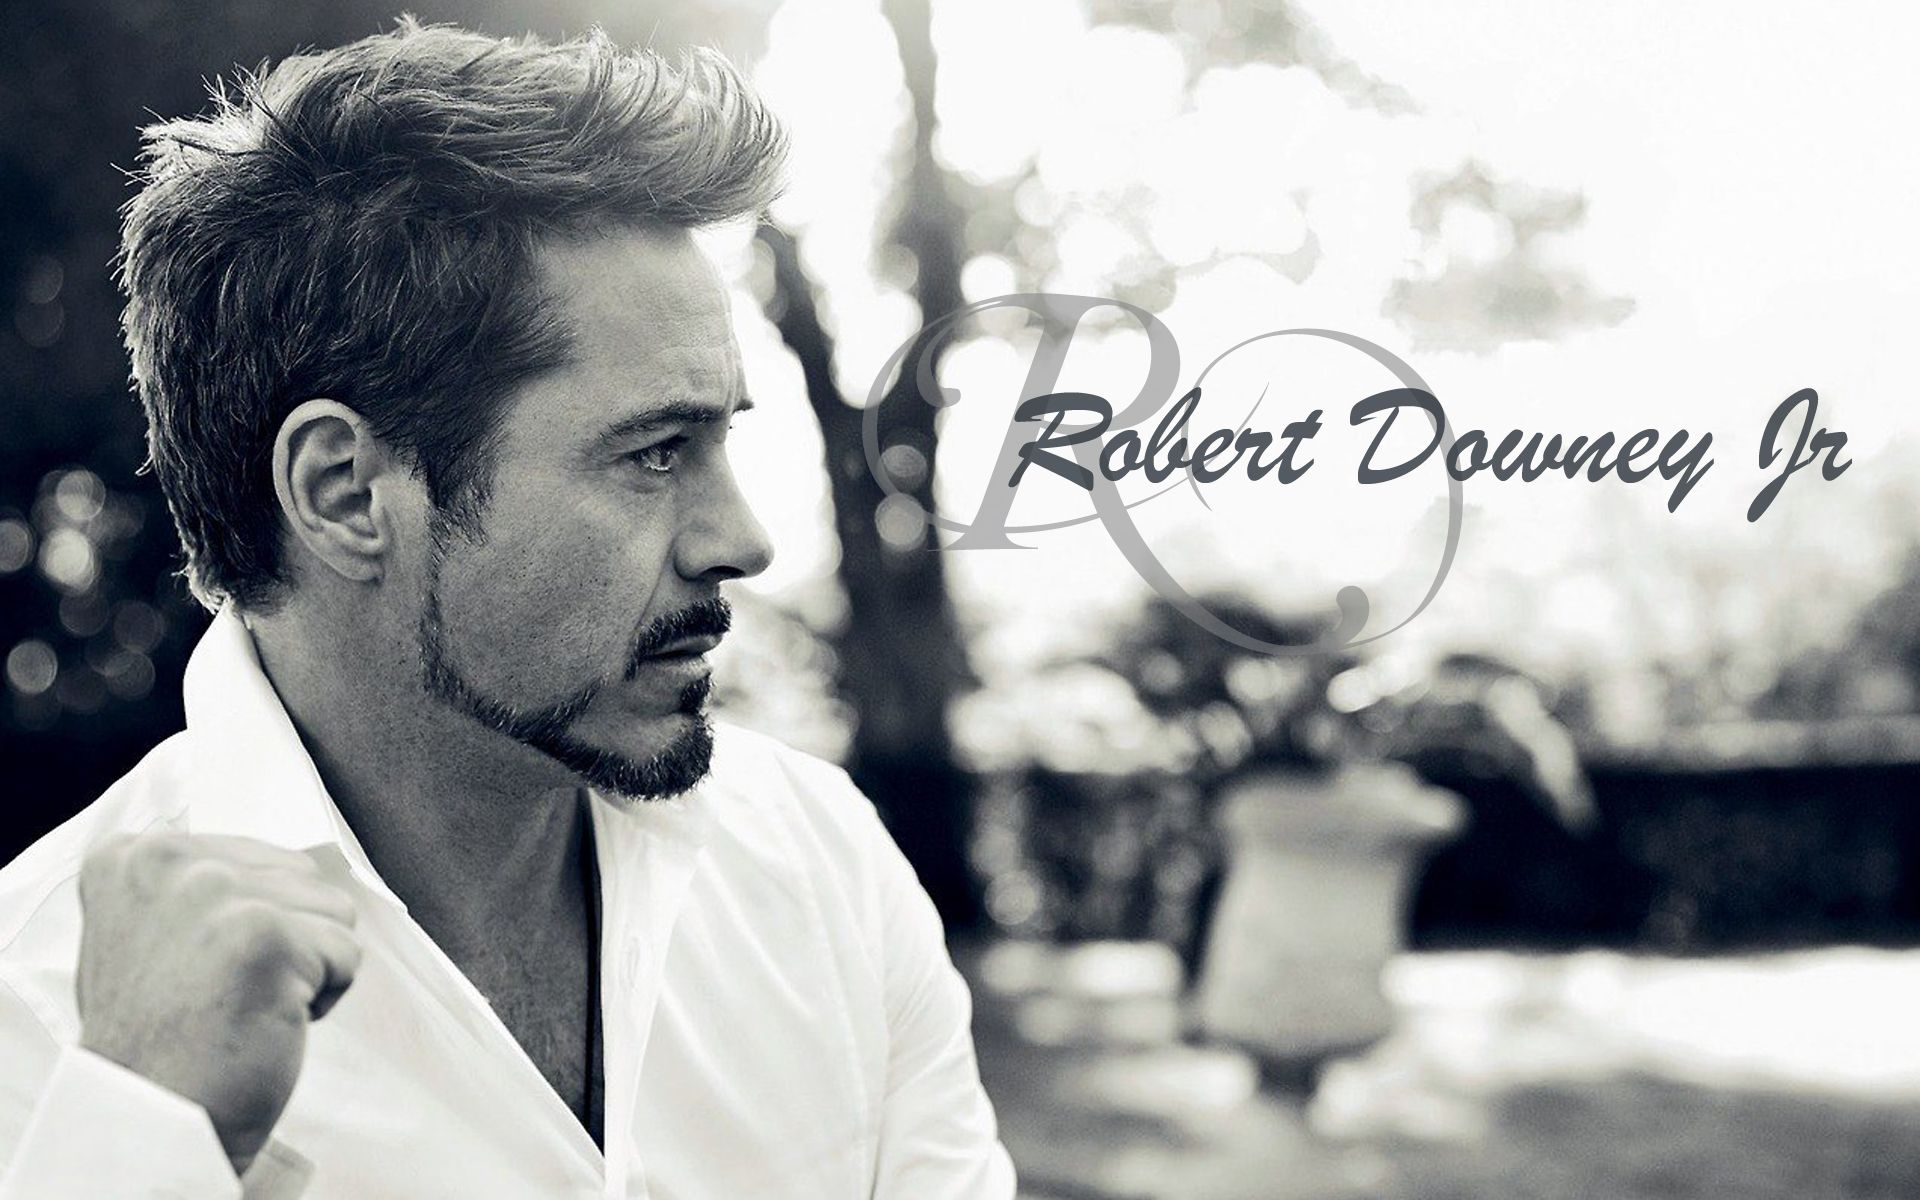 Robert Downey Jr Wallpapers High Resolution and Quality Download 1920x1200